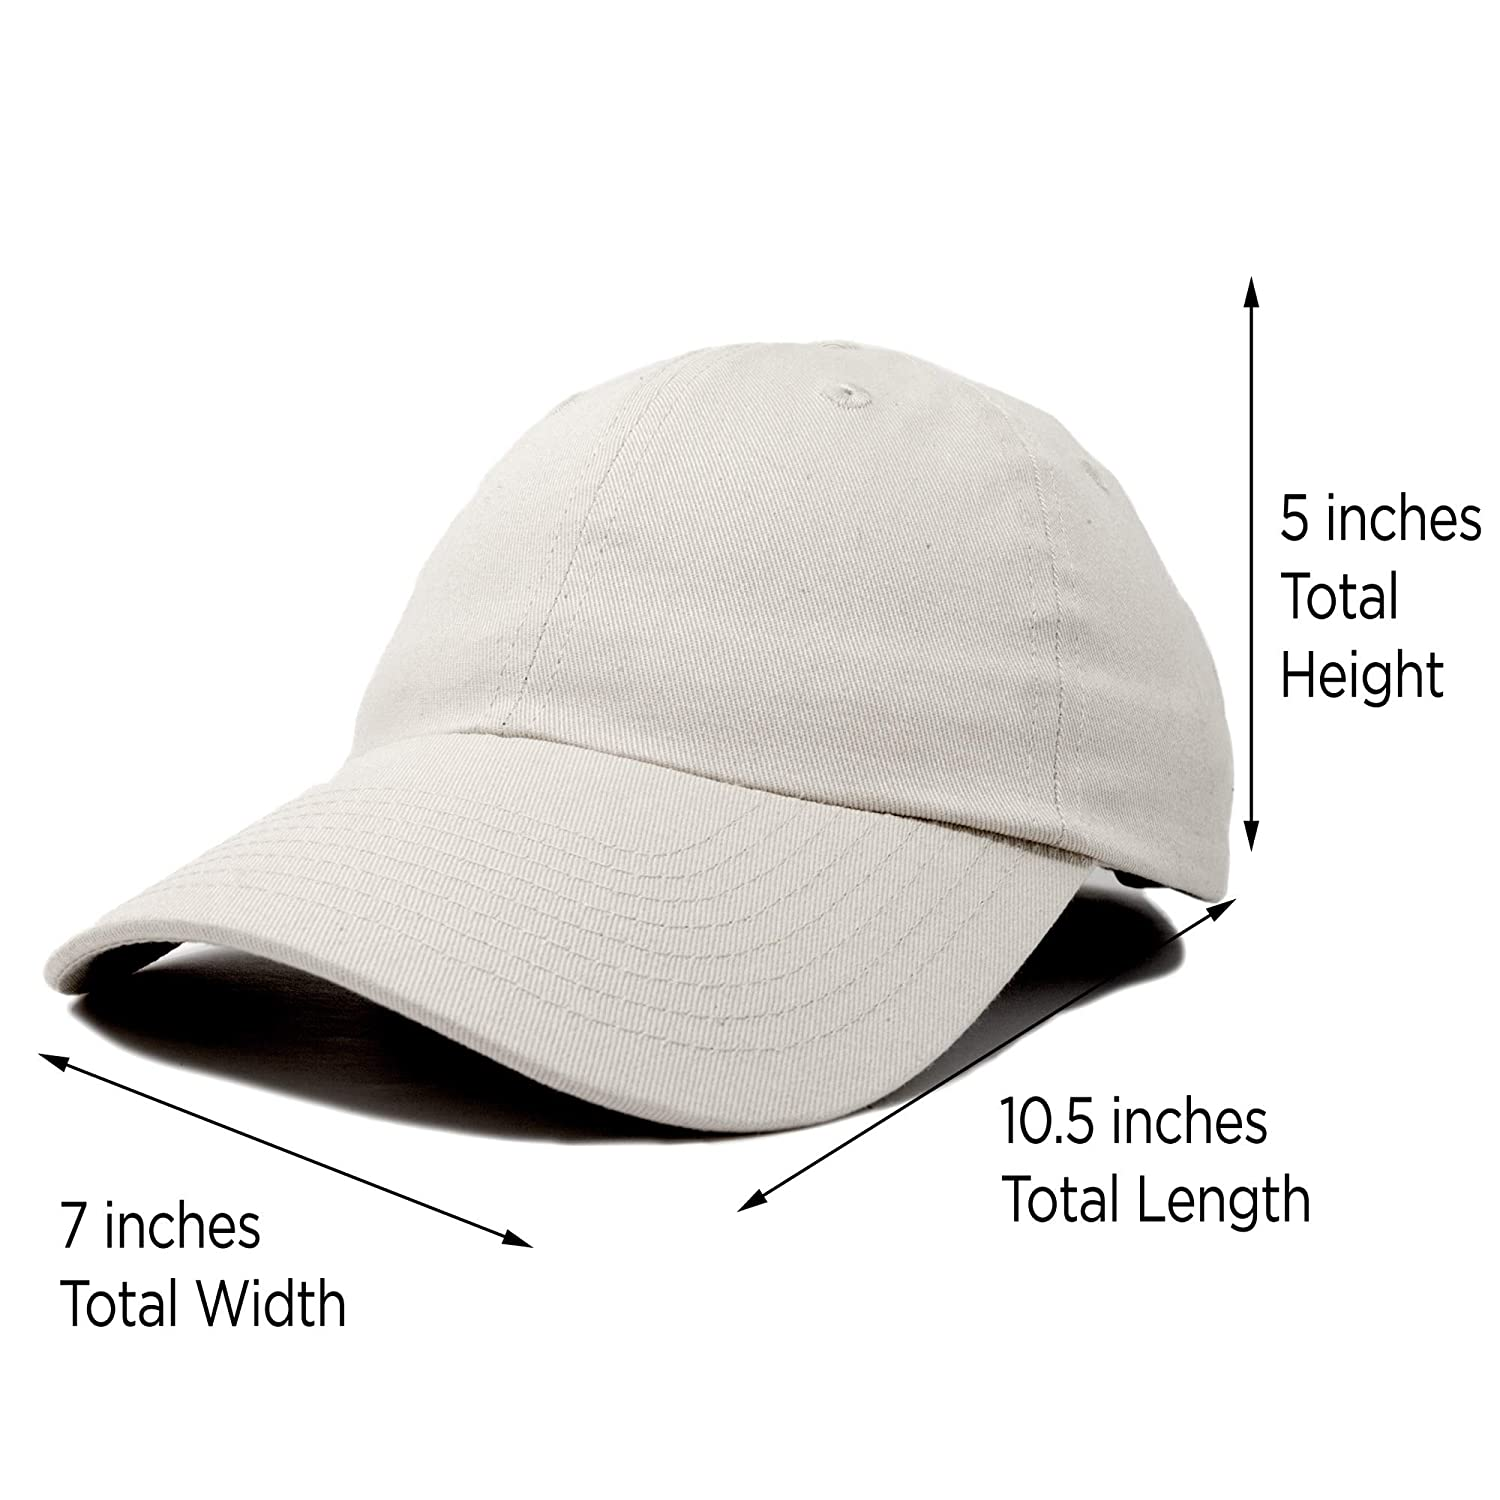 37ea53ac83b Dalix Unisex Unstructured Cotton Cap Adjustable Plain Hat